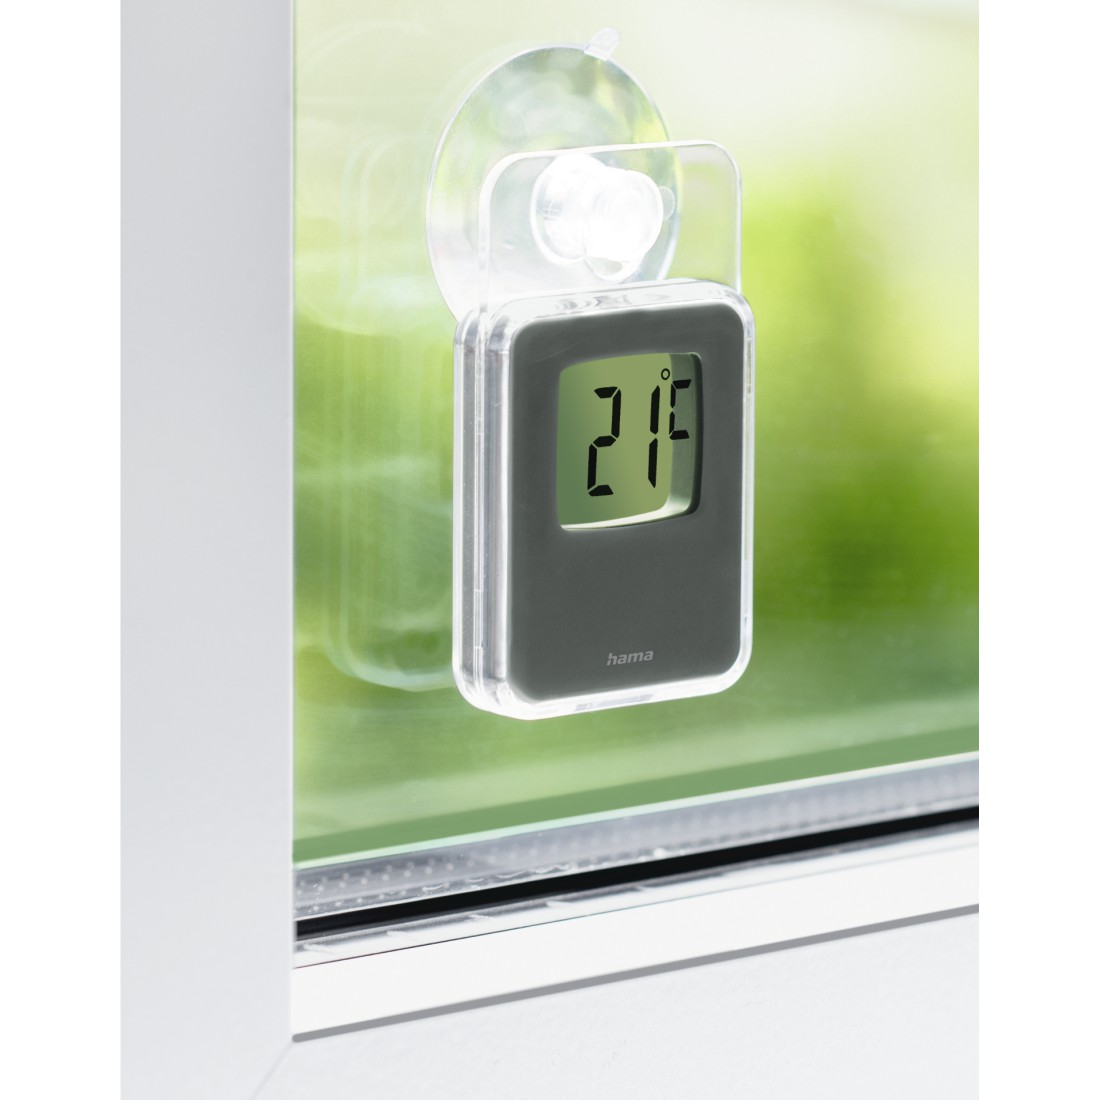 awx High-Res Appliance - Hama, Window Thermometer for Indoors and Outdoors, Digital, 7.5 x 4.6 cm, grey